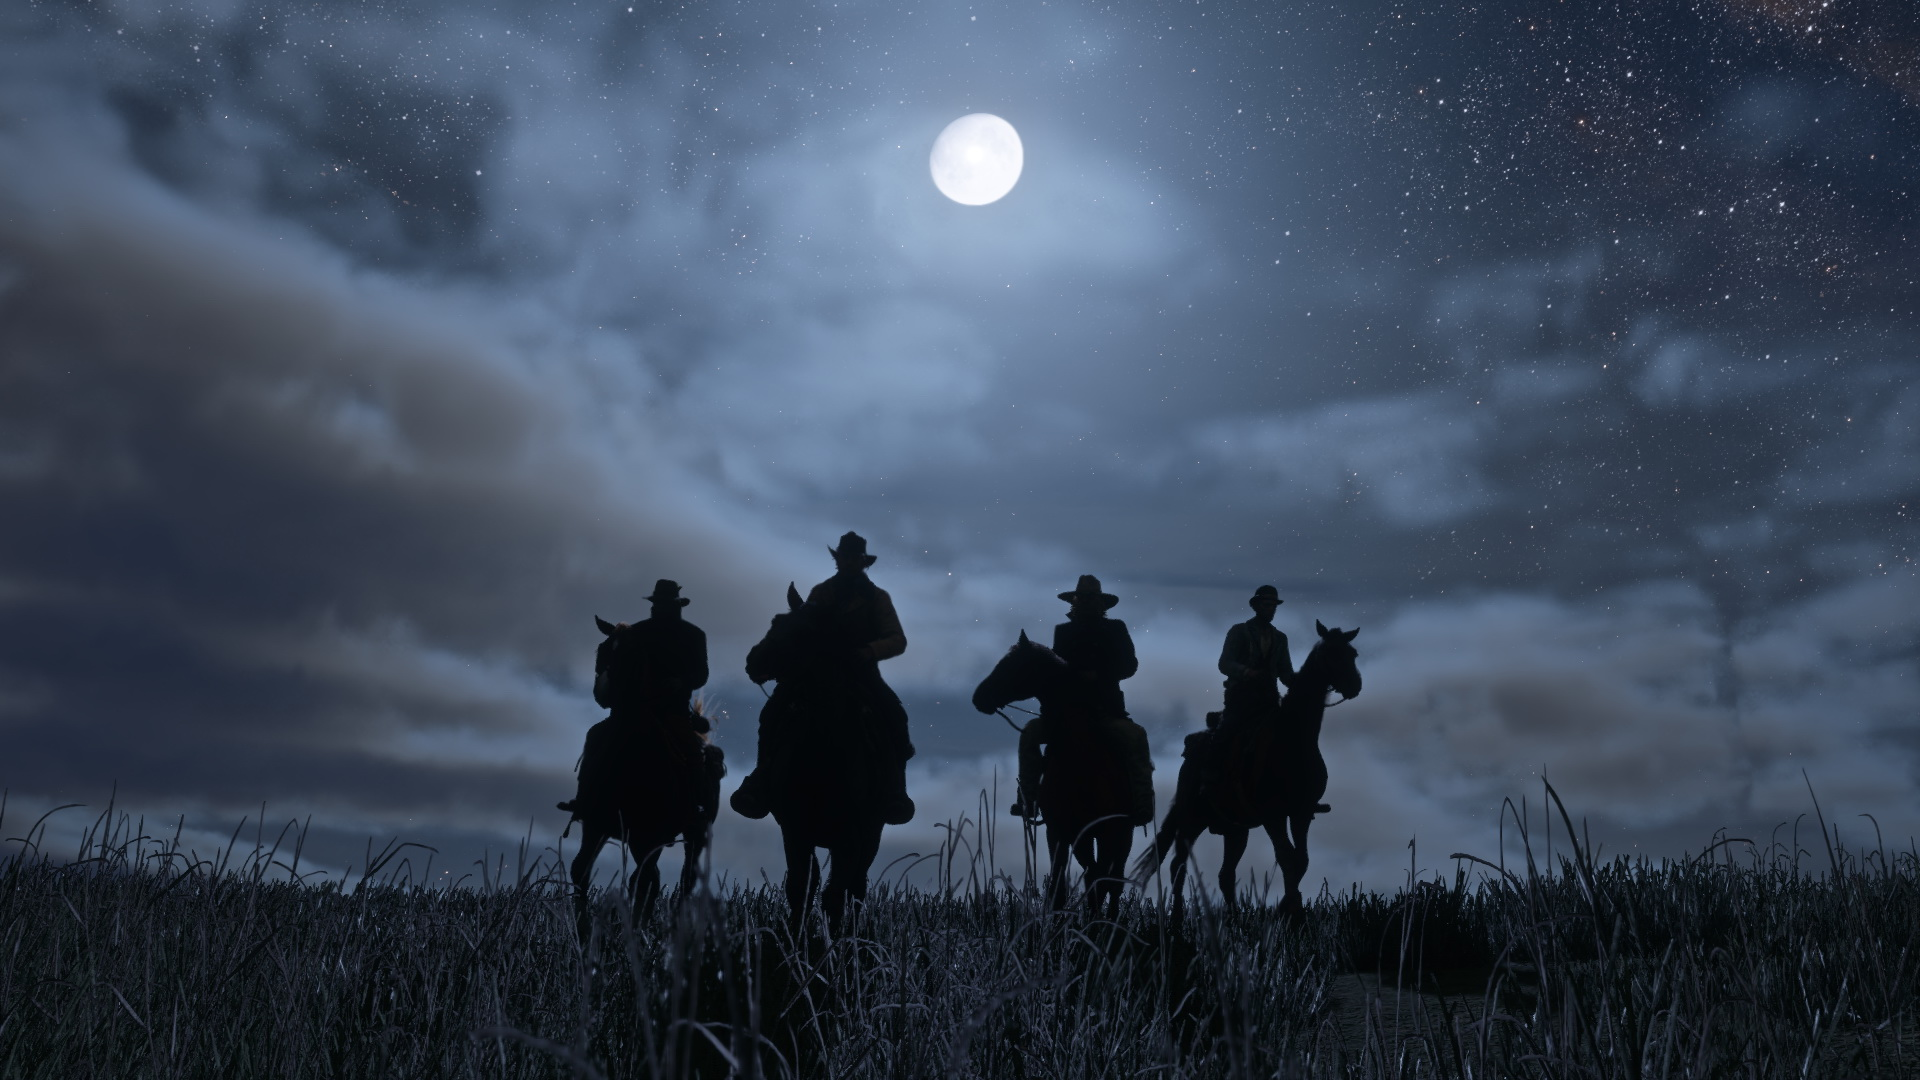 rdr2_screenshot-001